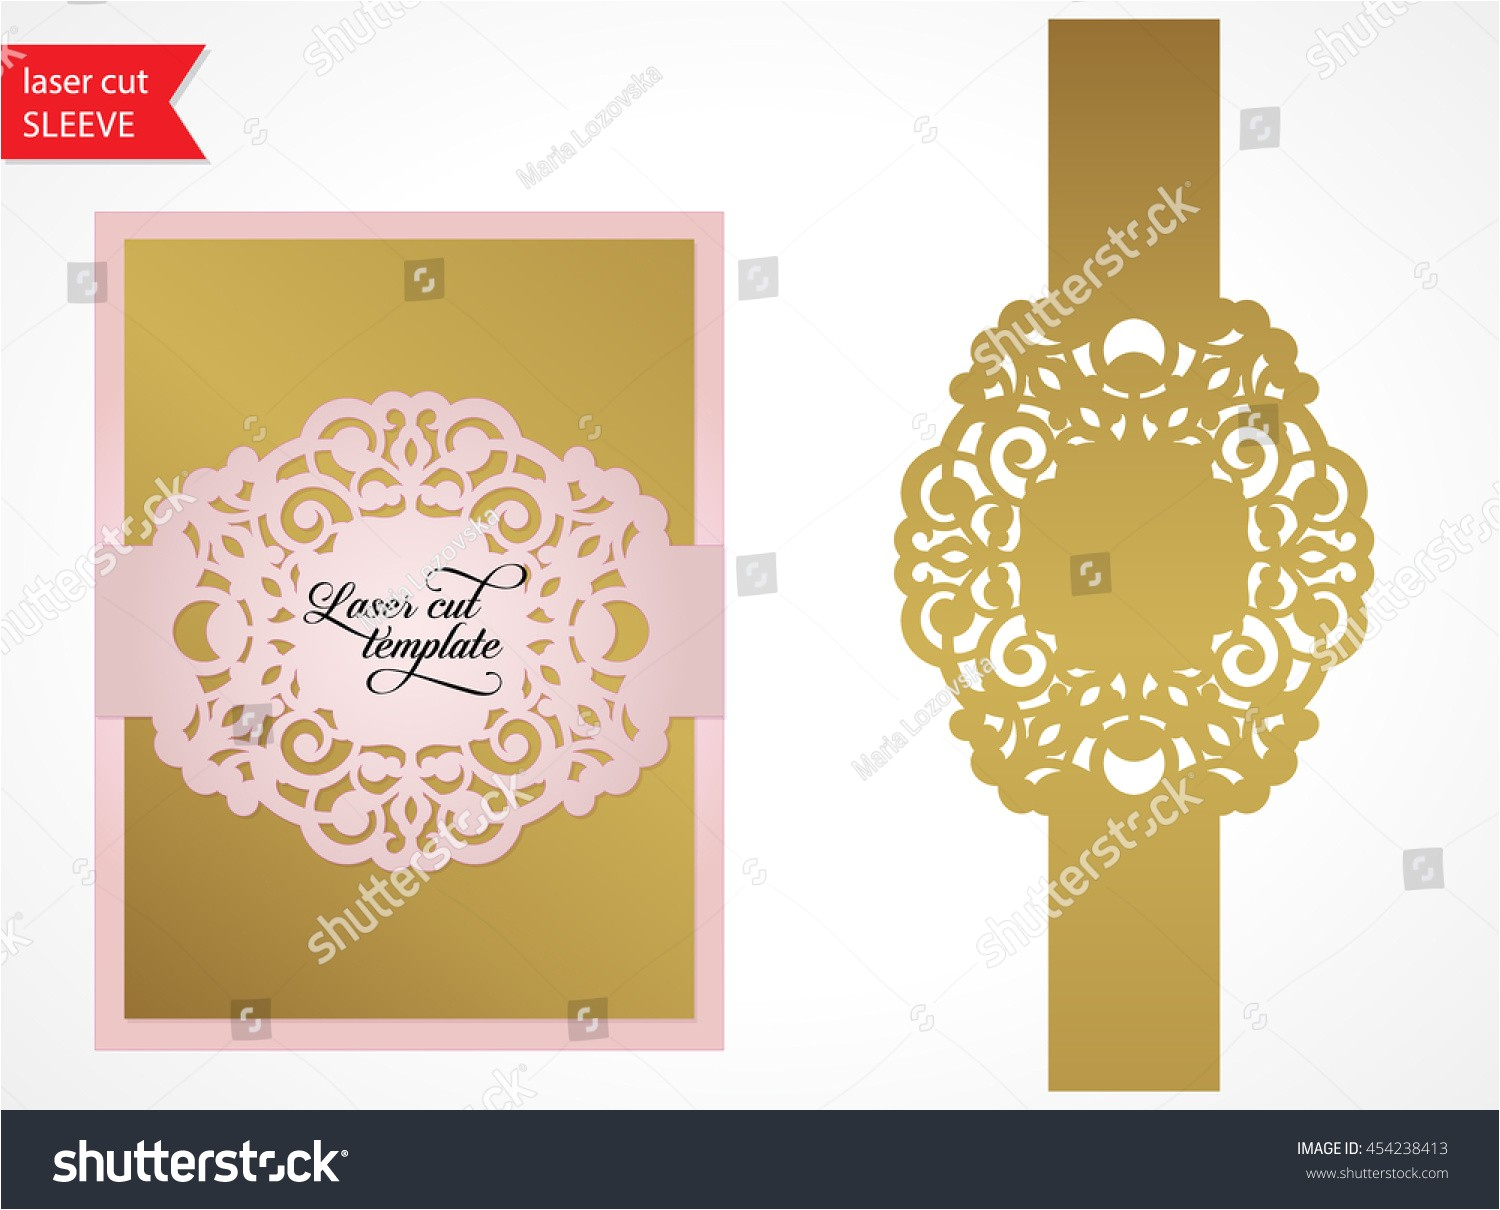 laser cut wedding invitation template silhouette 454238413